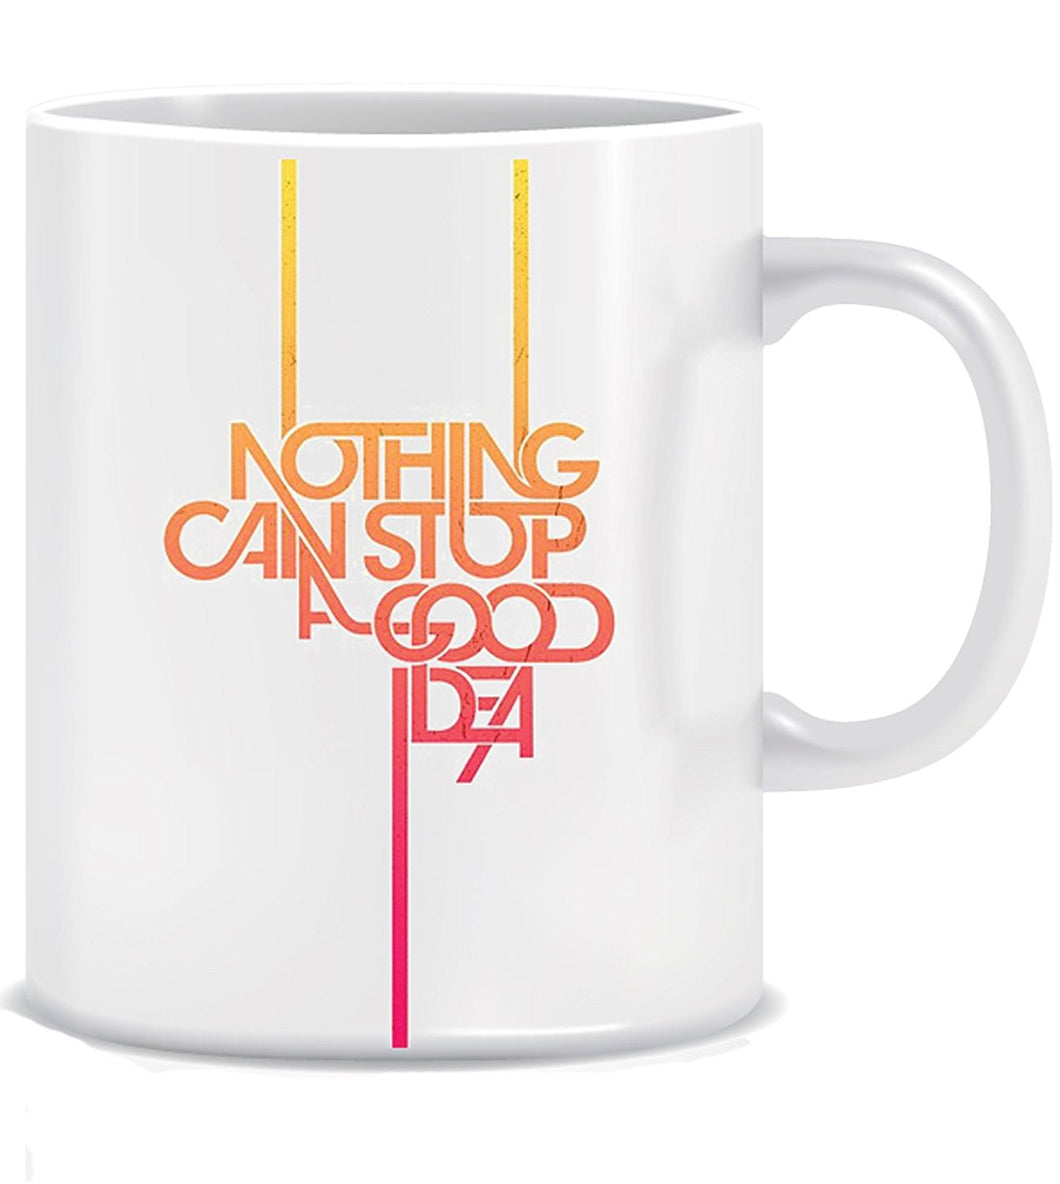 Nothing can stop a good idea Ceramic Coffee Mug ED020